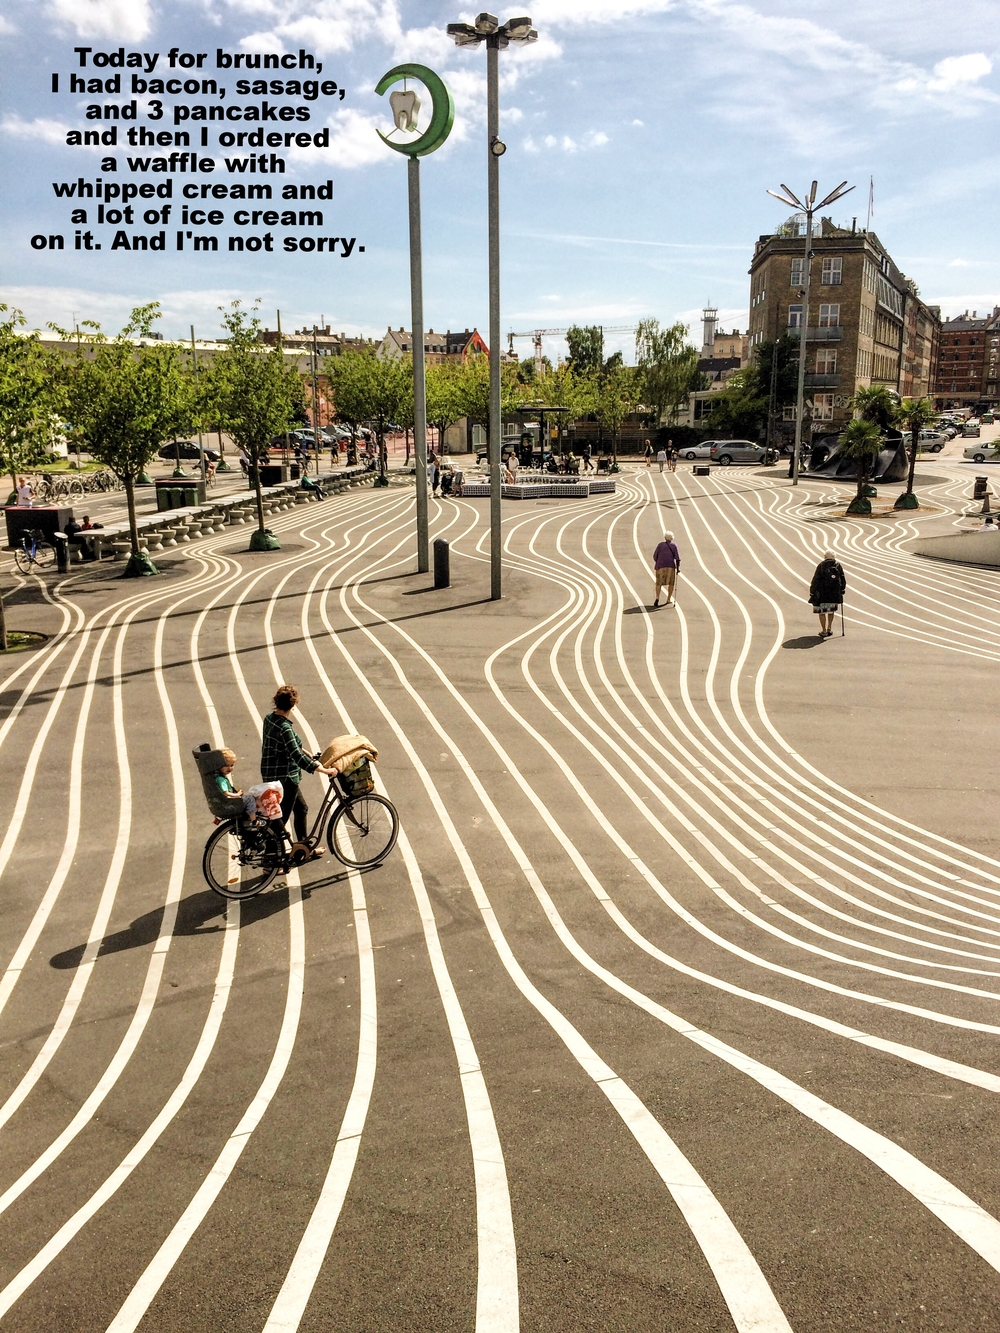 "Zoe January 10 2016 Image of a public art project, where squiggly white lines indicating lanes are drawn whimsically on pavement. A mother on a bicycle with a child in the back ride through the project, and several older women walking with canes walk through. ""Today for brunch I had bacon, sausage, and 3 pancakes, and then I ordered a waffle with whipped cream and a lot of ice cream on it. And I'm not sorry"" is overlaid."